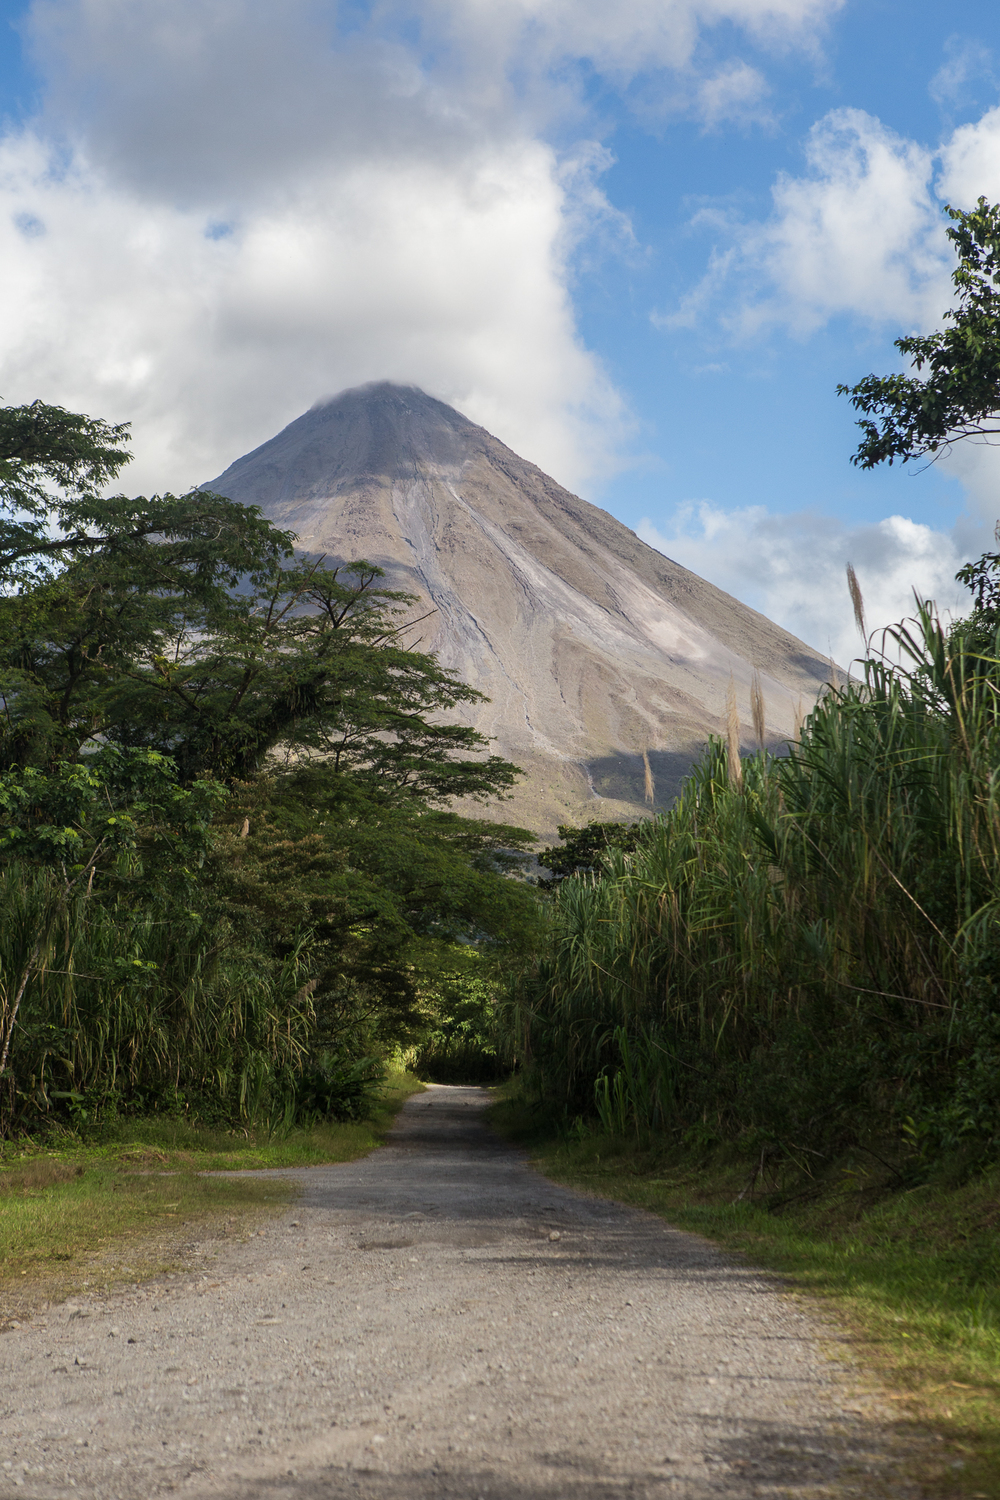 The dirt road entrance at Arenal National Park. You can see the lava trails down the volcano.